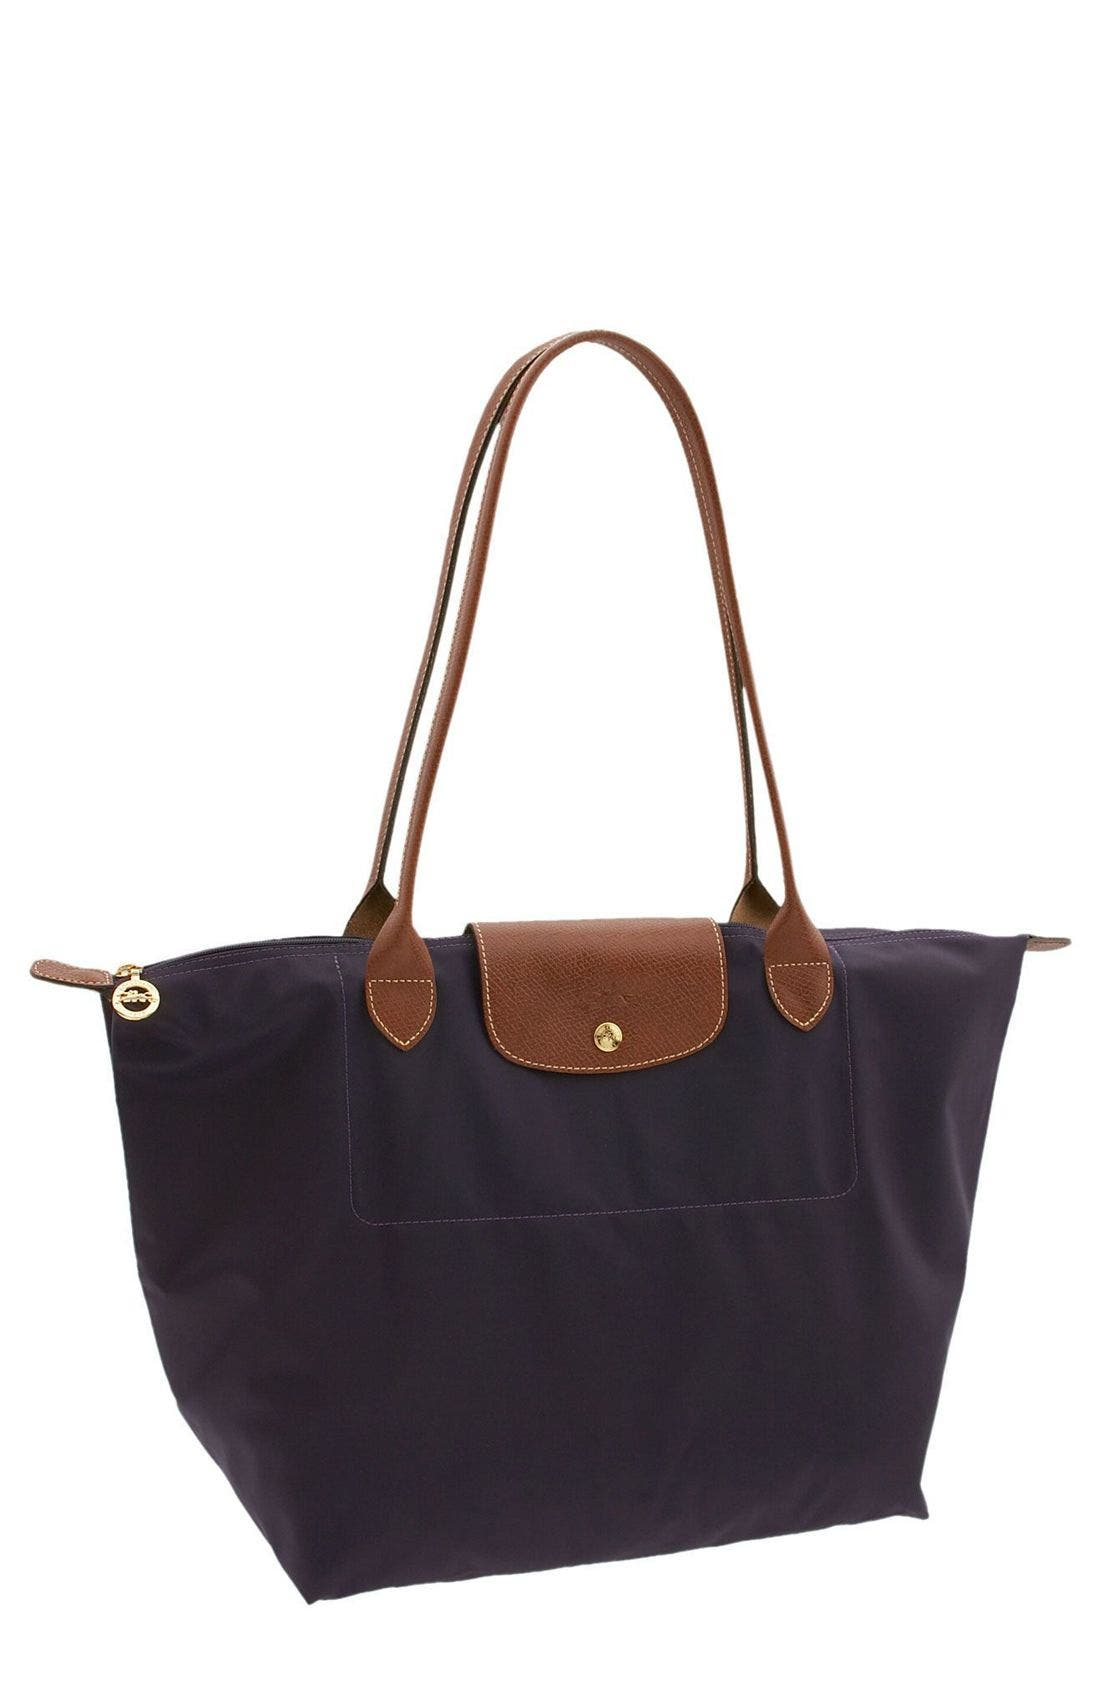 Main Image - Longchamp 'Le Pliage - Large' Tote Bag